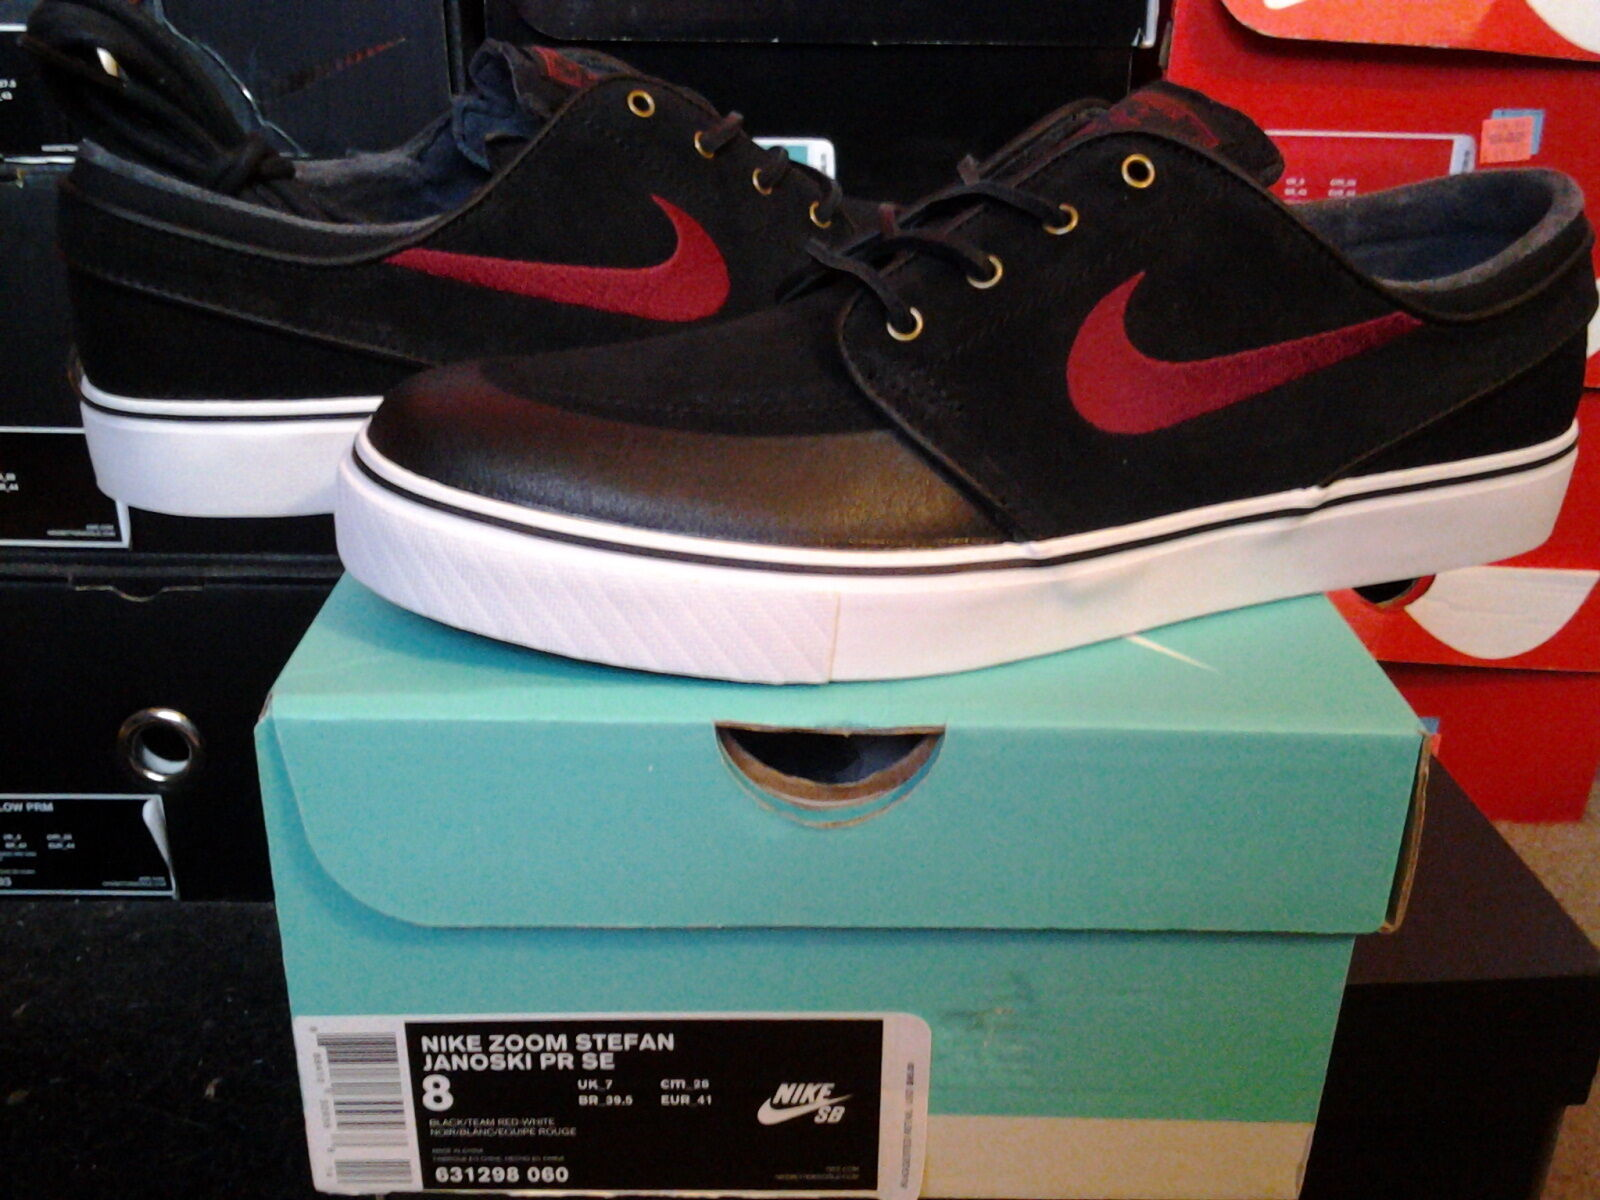 Nike Air Zoom Stefan Janoski SB PR PR PR Premium SE Black Team Red White sp 631298 060 07d349